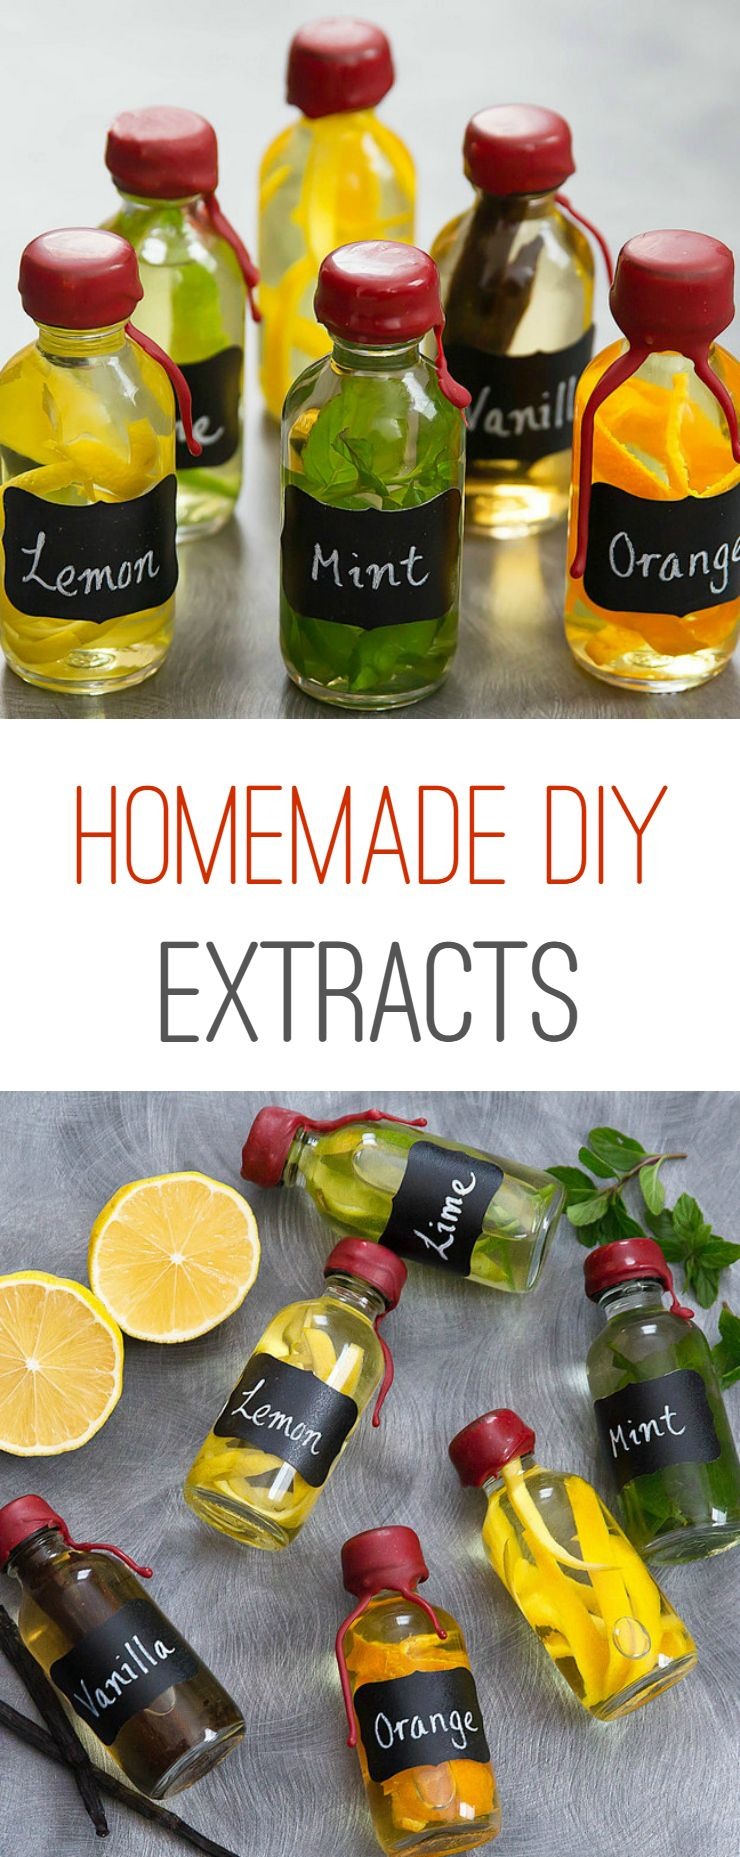 Homemade DIY Extracts #diygifts